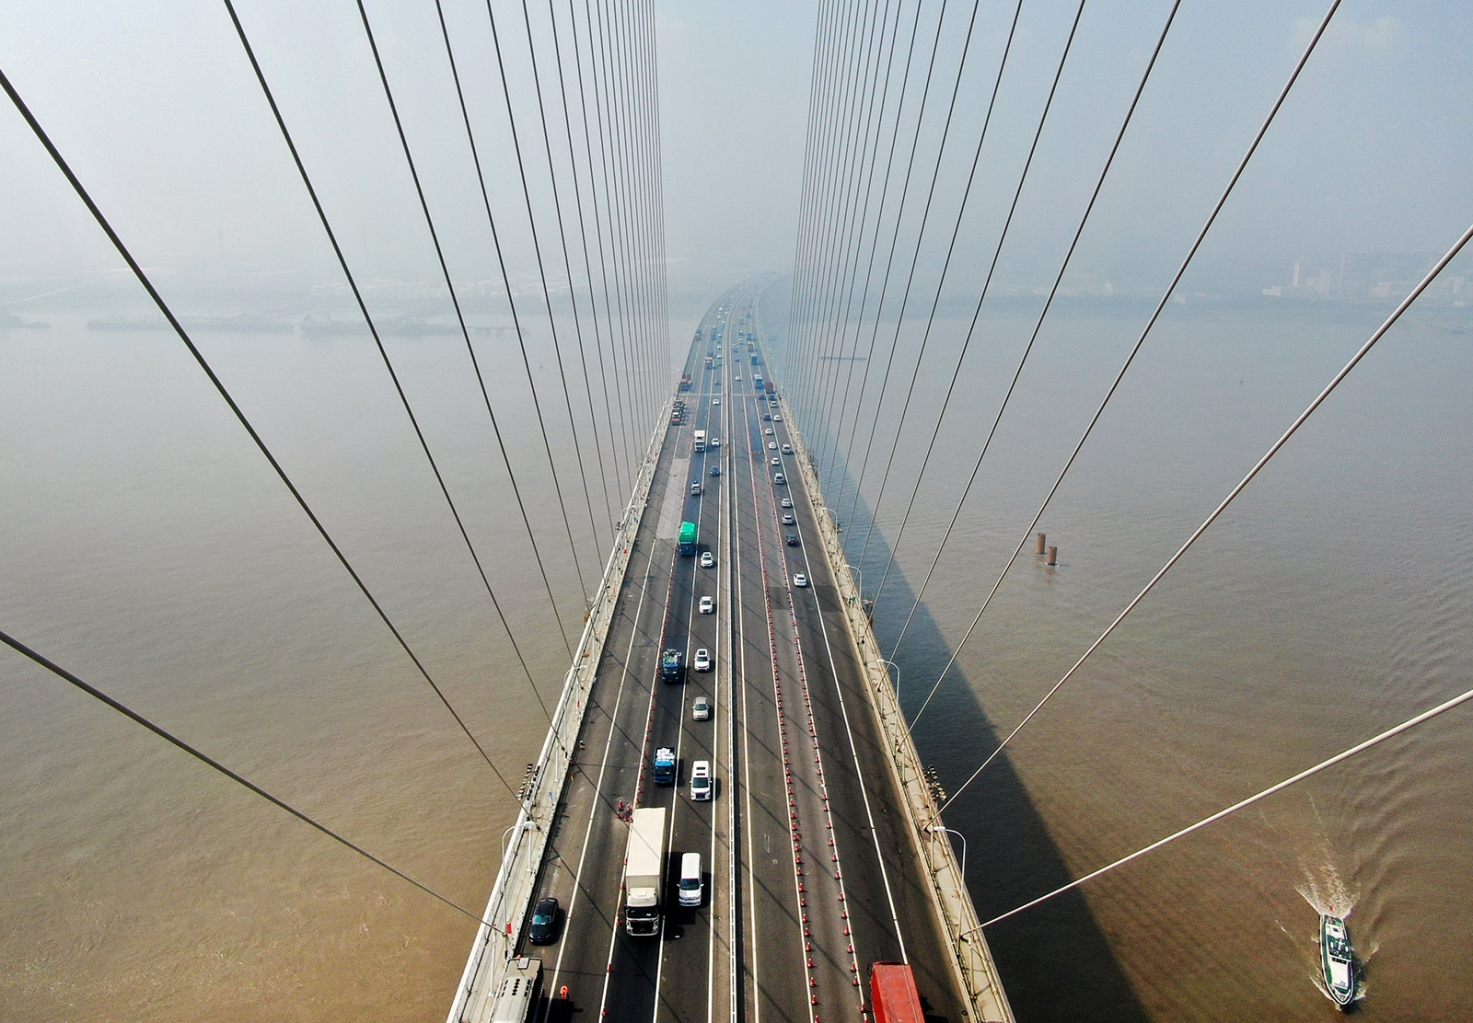 An aerial view of the Sutong Bridge in Nantong in China's eastern Jiangsu province on Aug. 14. STR/AFP/Getty Images